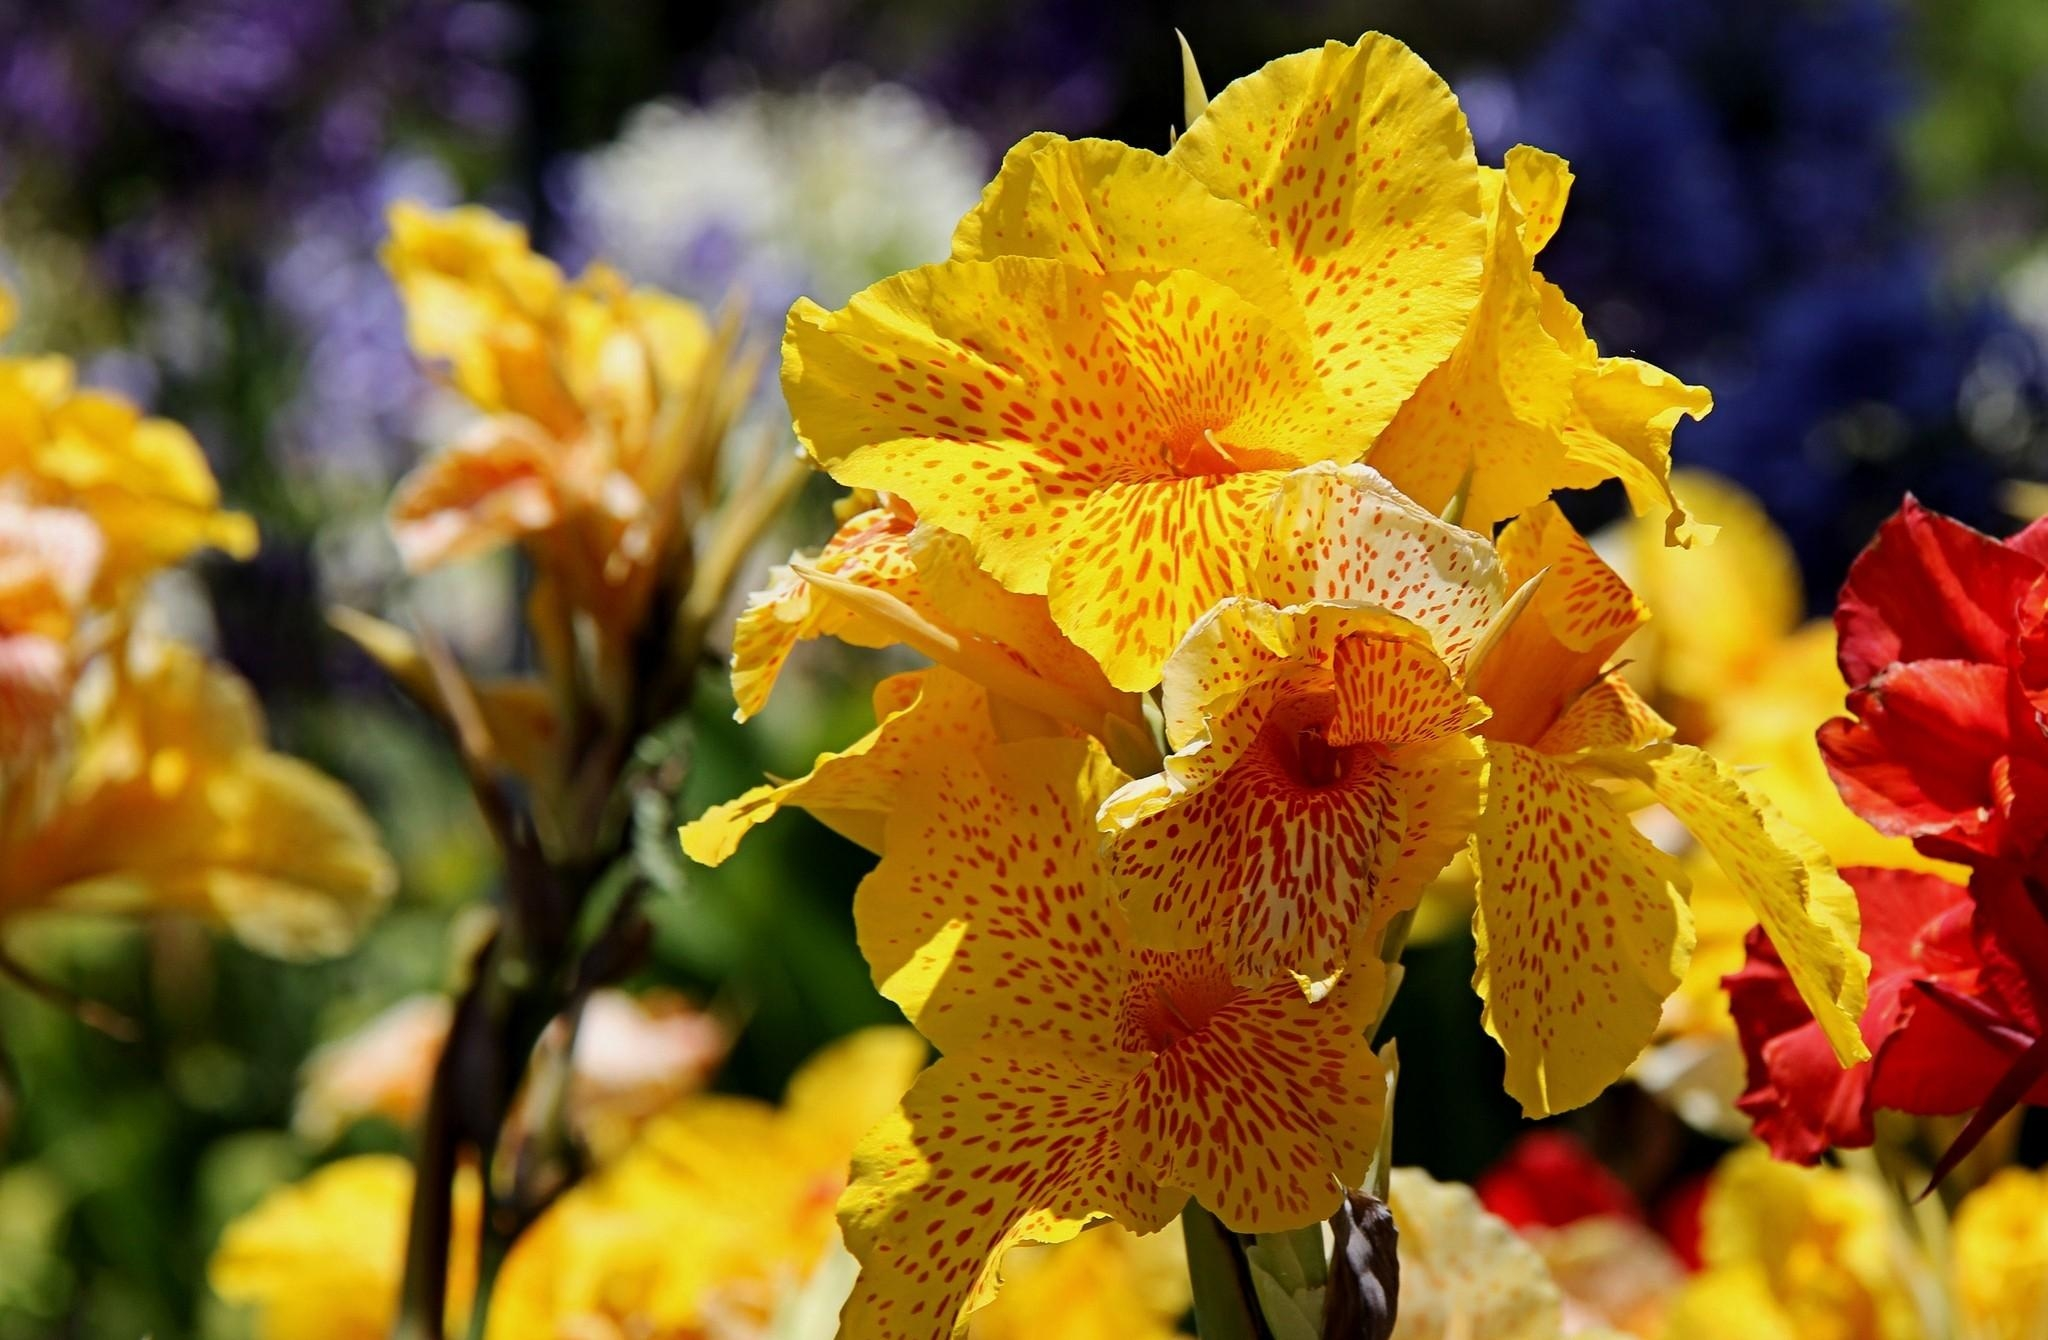 97288 download wallpaper Flowers, Canna, Spotted, Flower Bed, Flowerbed, Close-Up screensavers and pictures for free